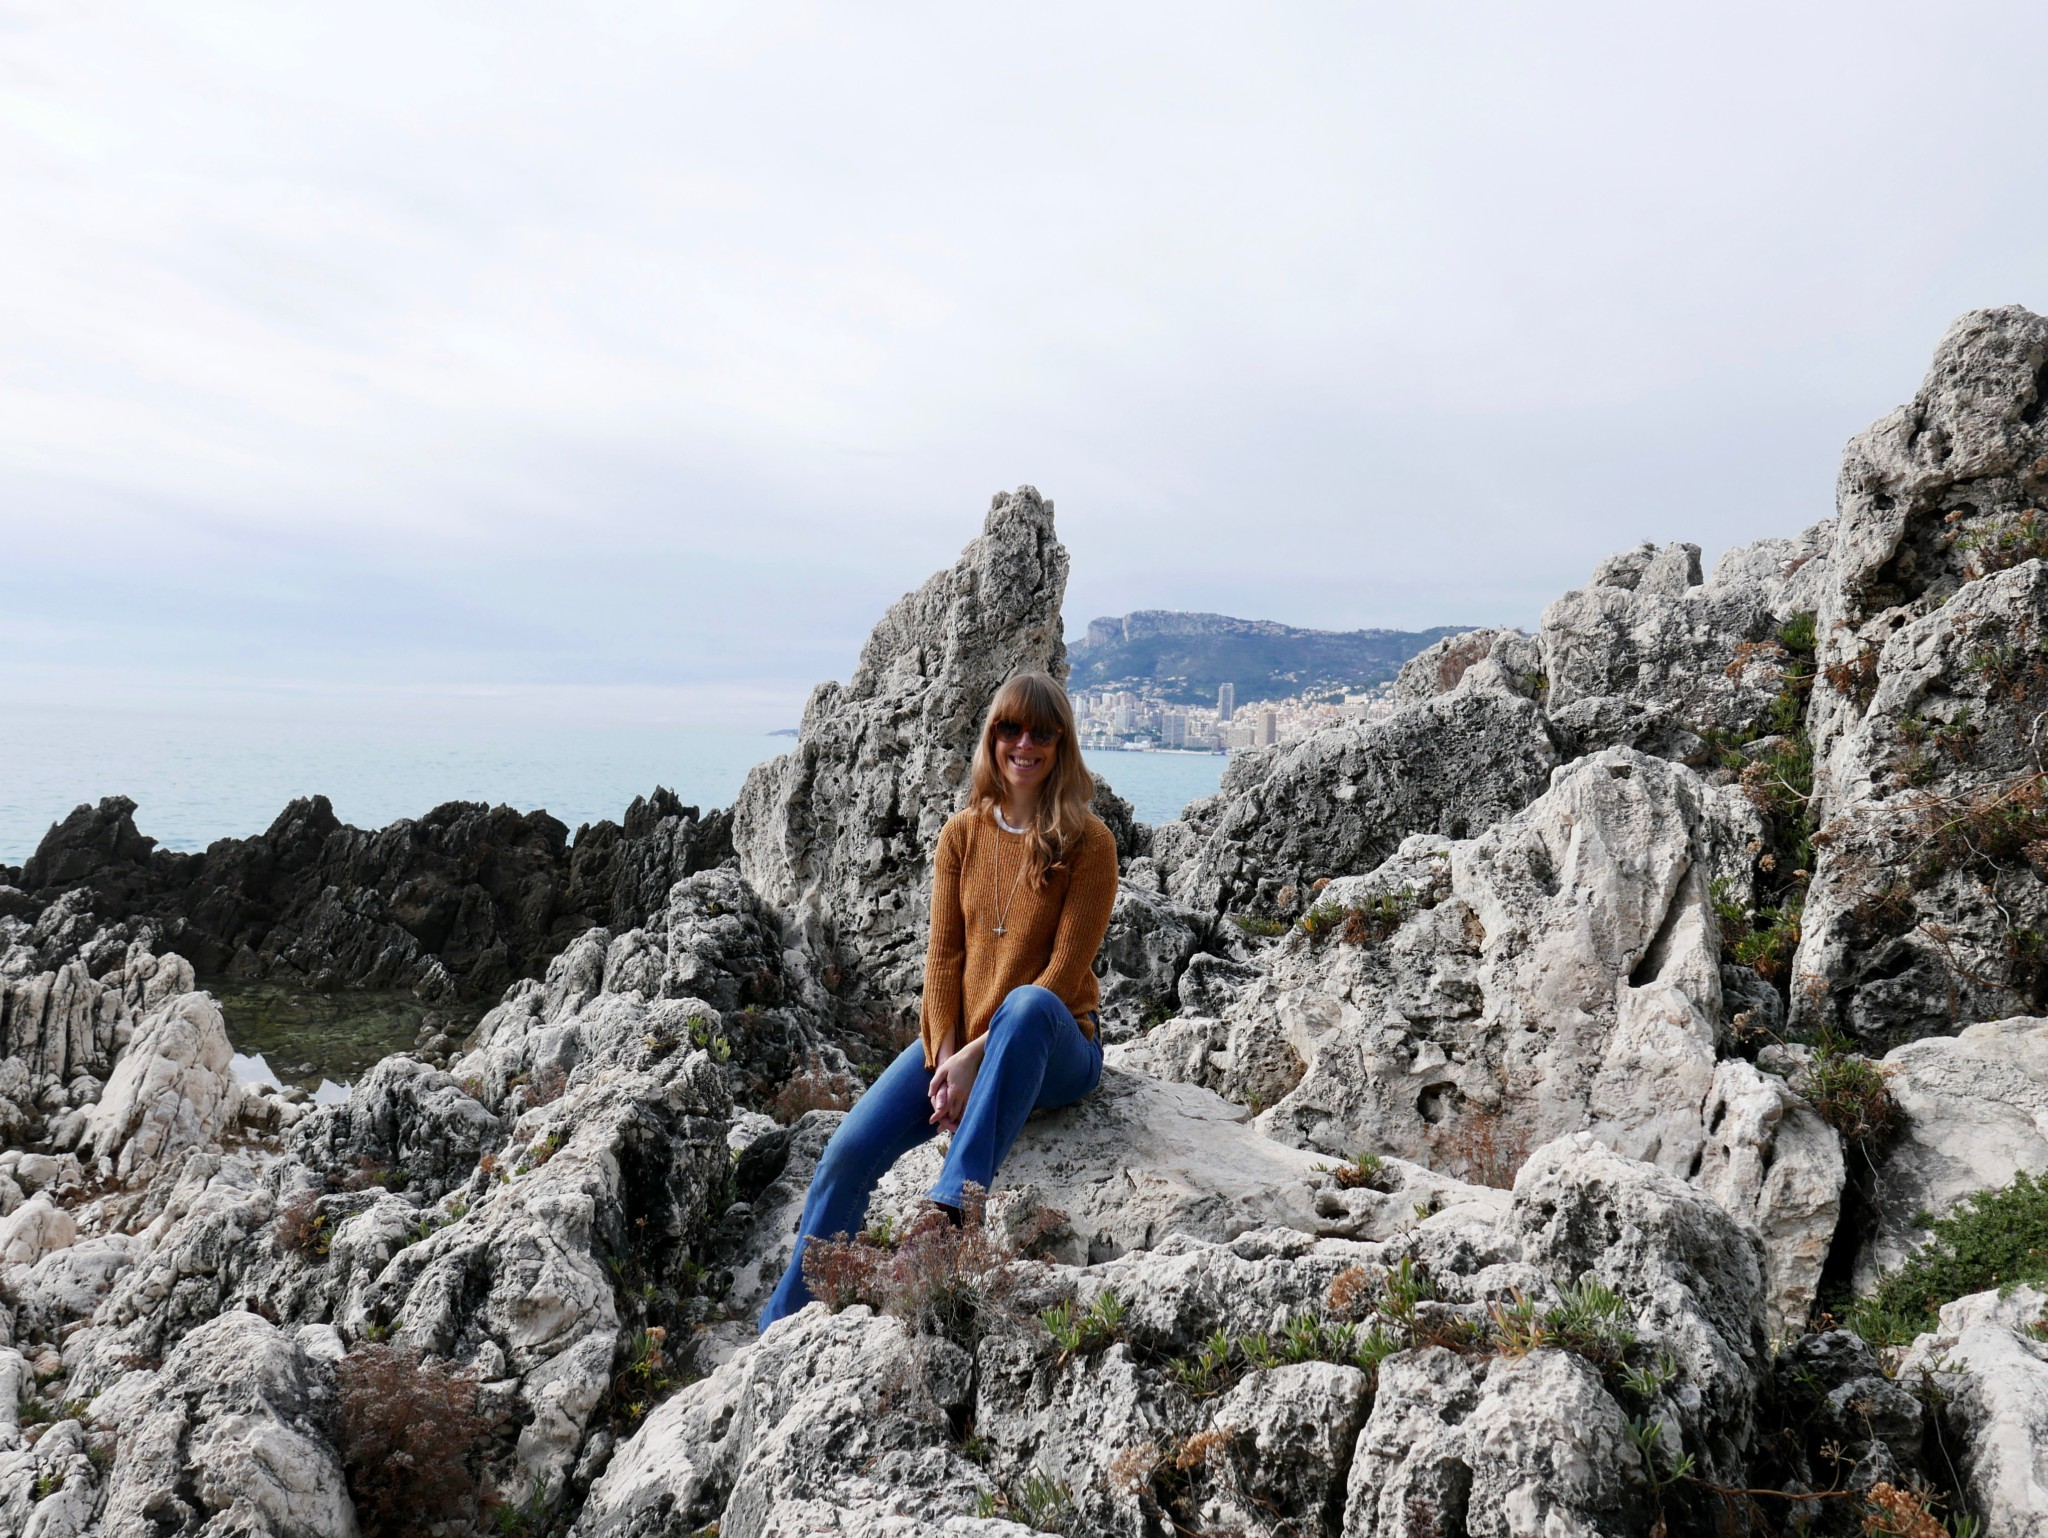 anja-stang-cliffs-cap-martin-france